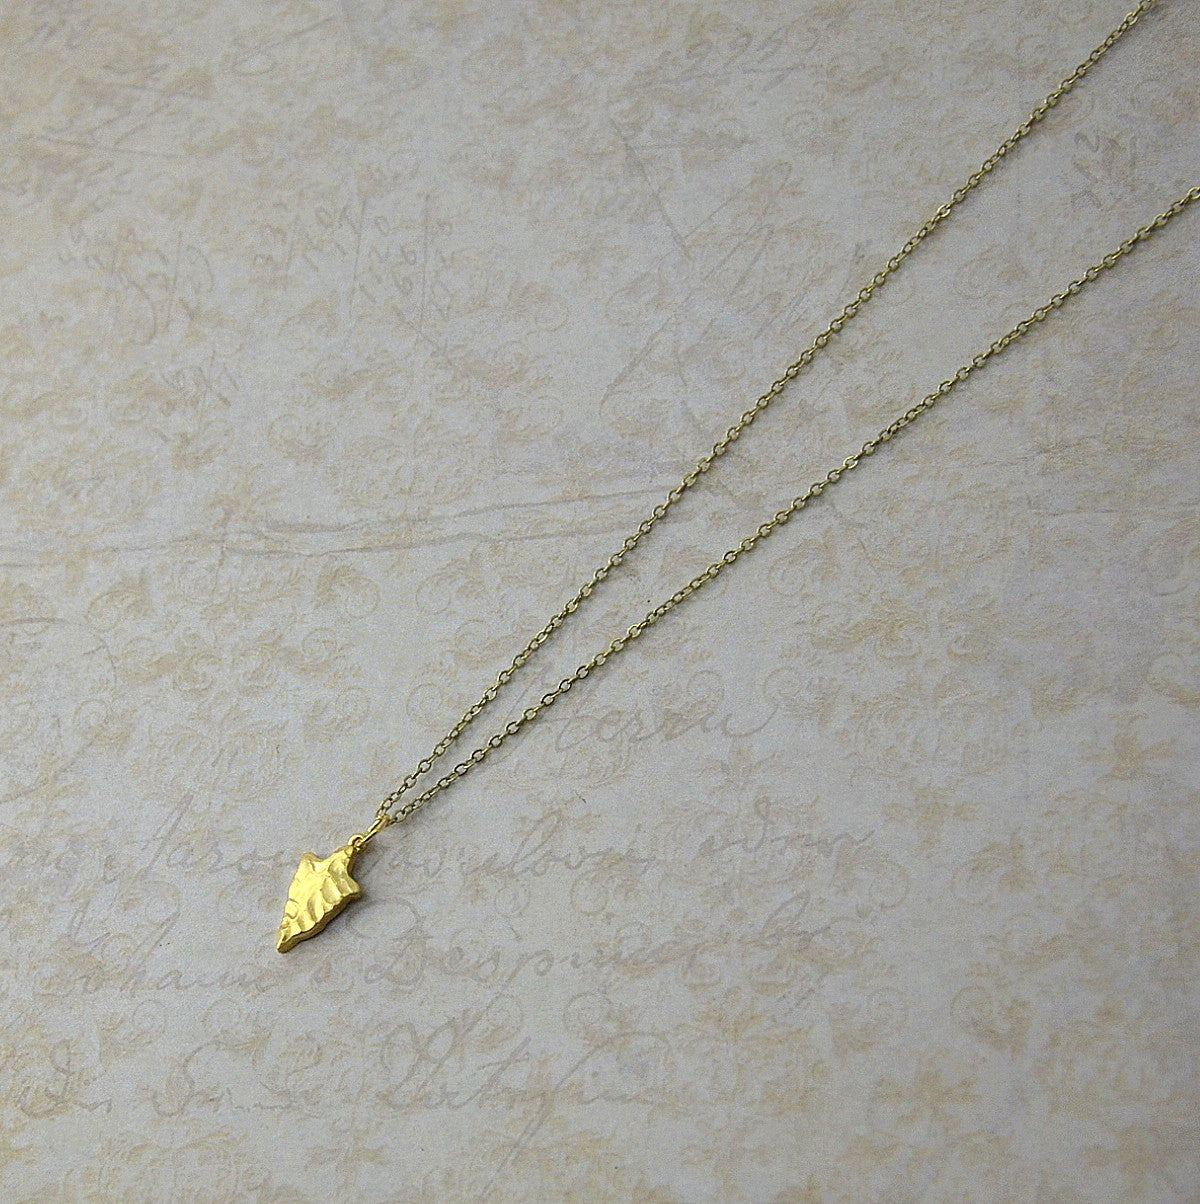 Tiny Arrowhead Necklace - Gwen Delicious Jewelry Designs